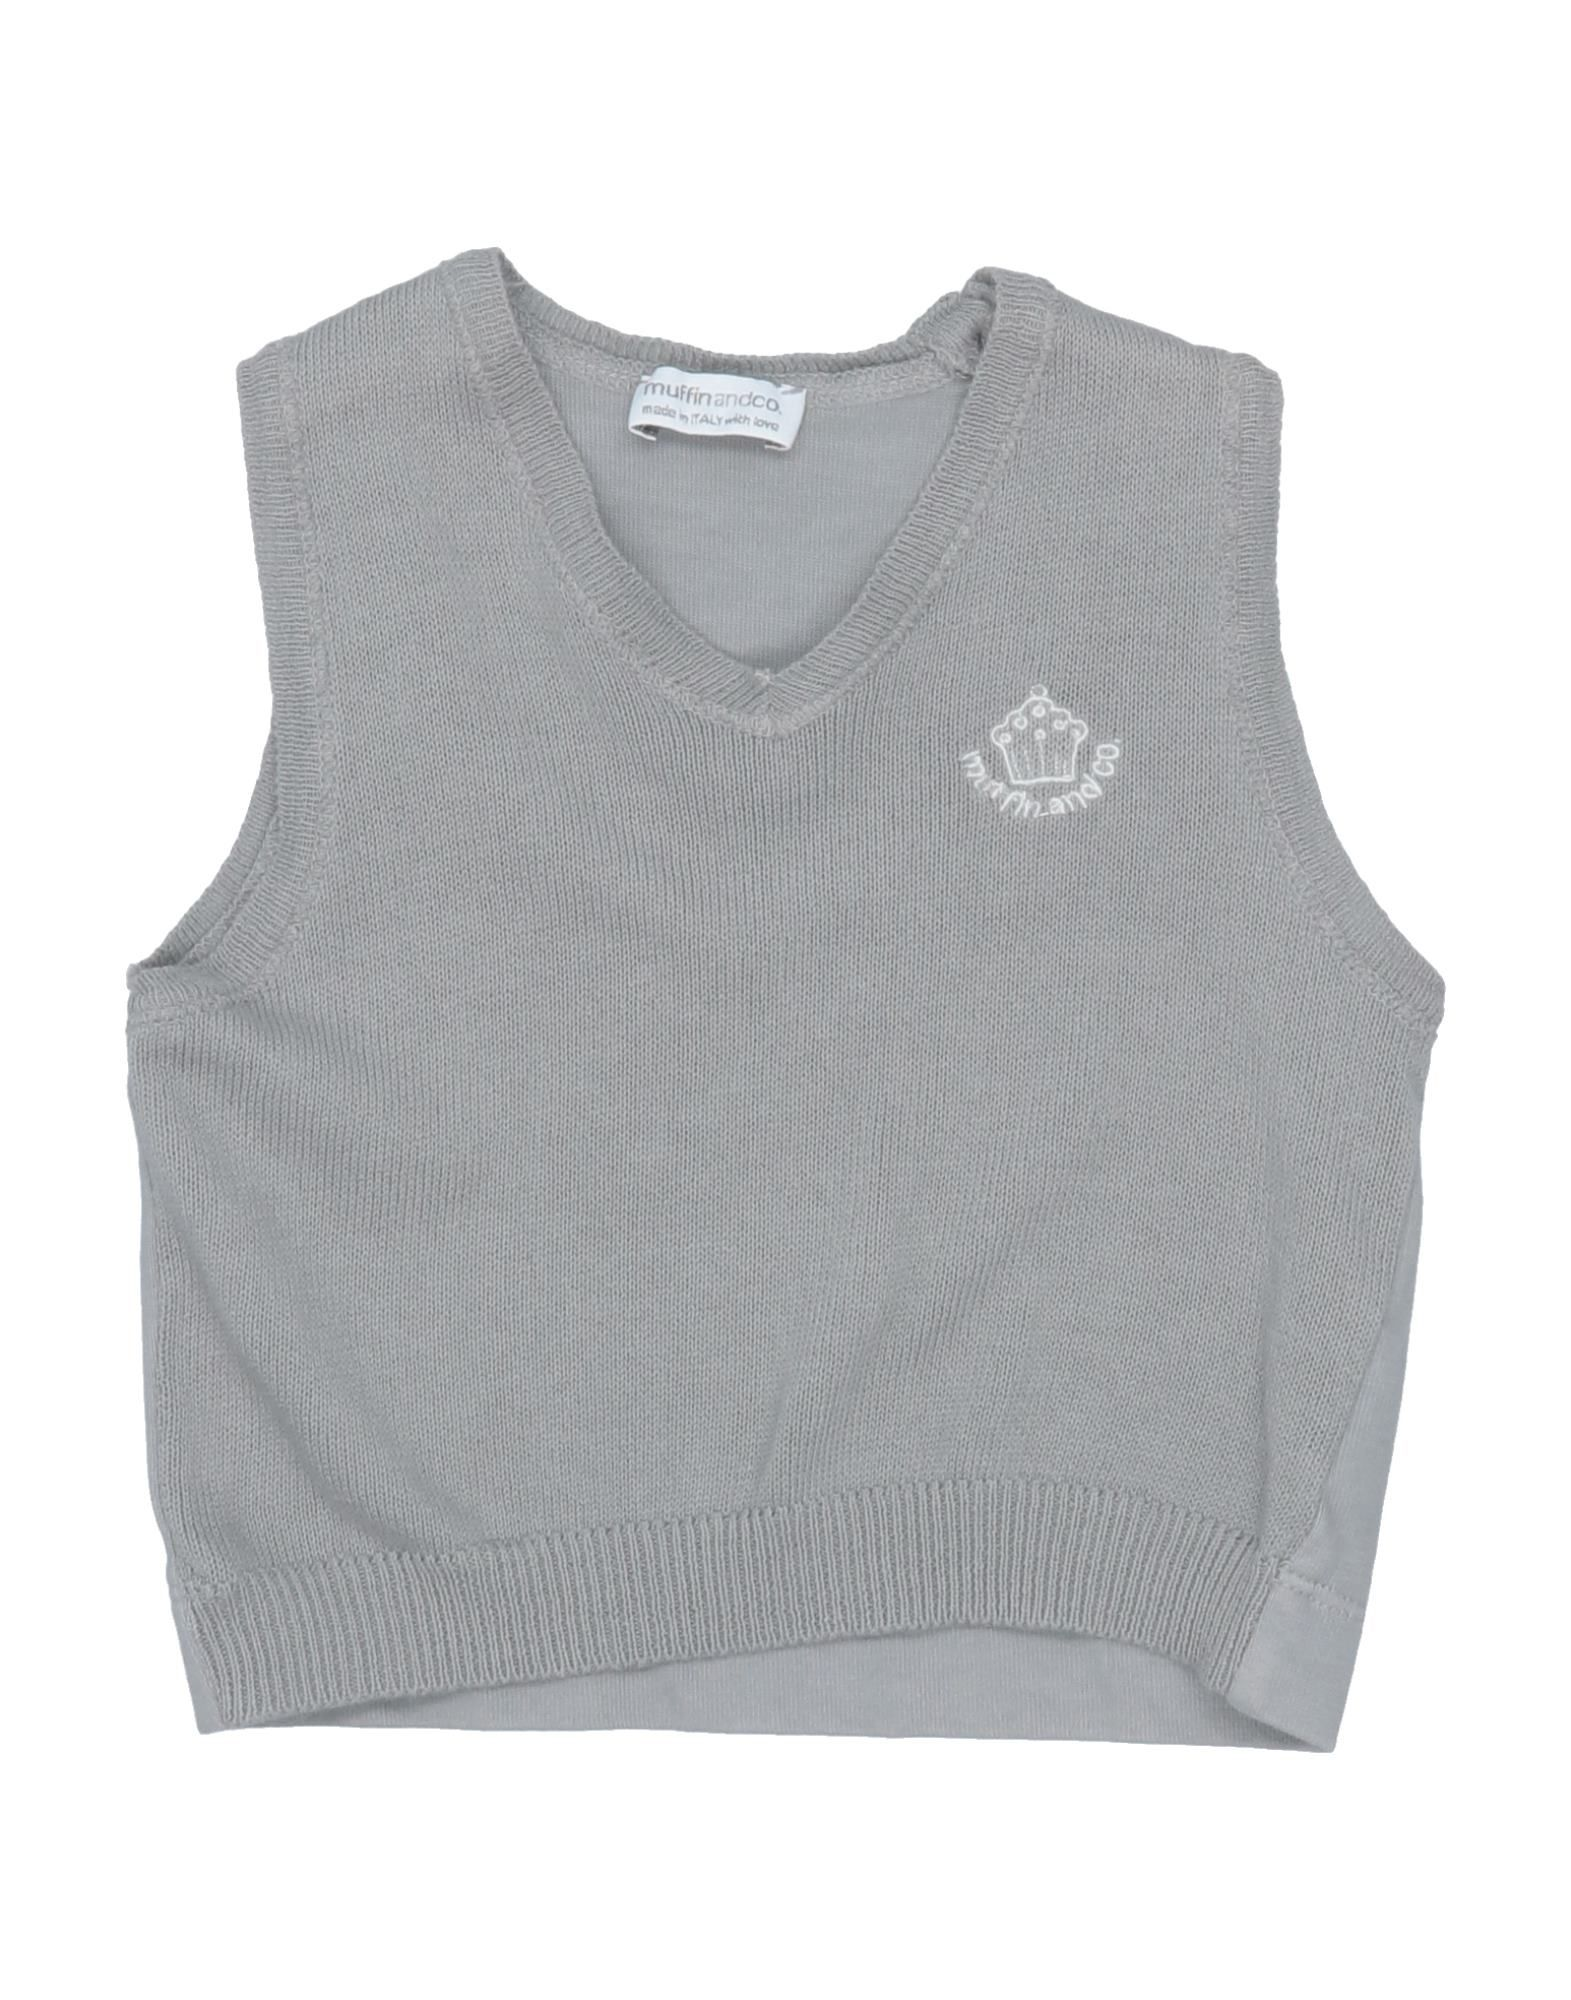 Muffin & Co. Kids' Sweaters In Gray